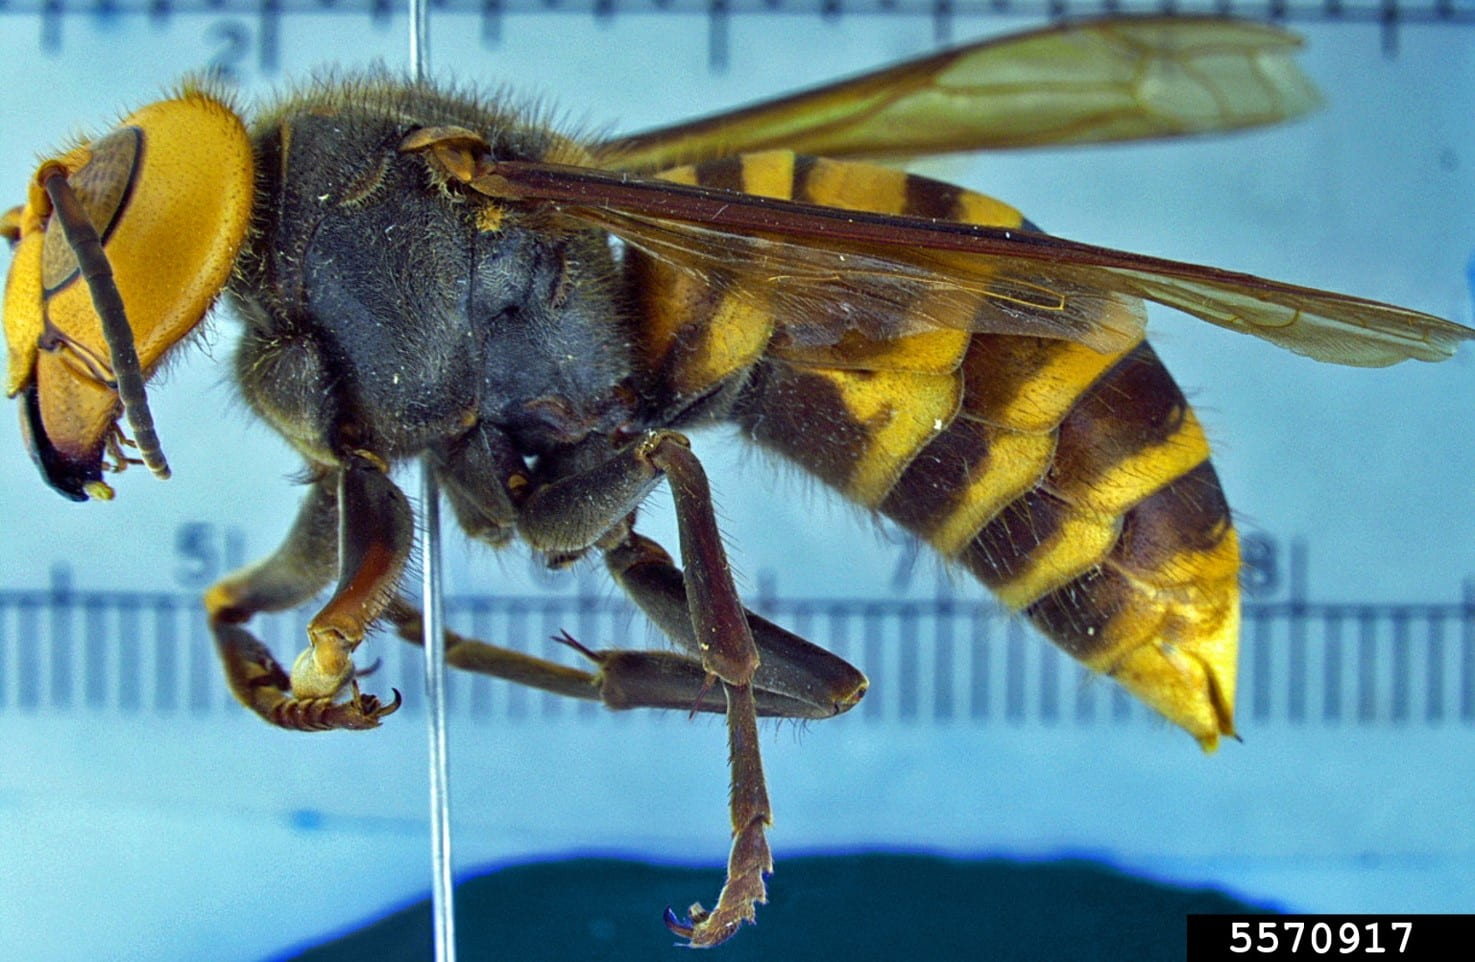 A pinned specimen of a large wasp, the Asian giant wasp from a side view.